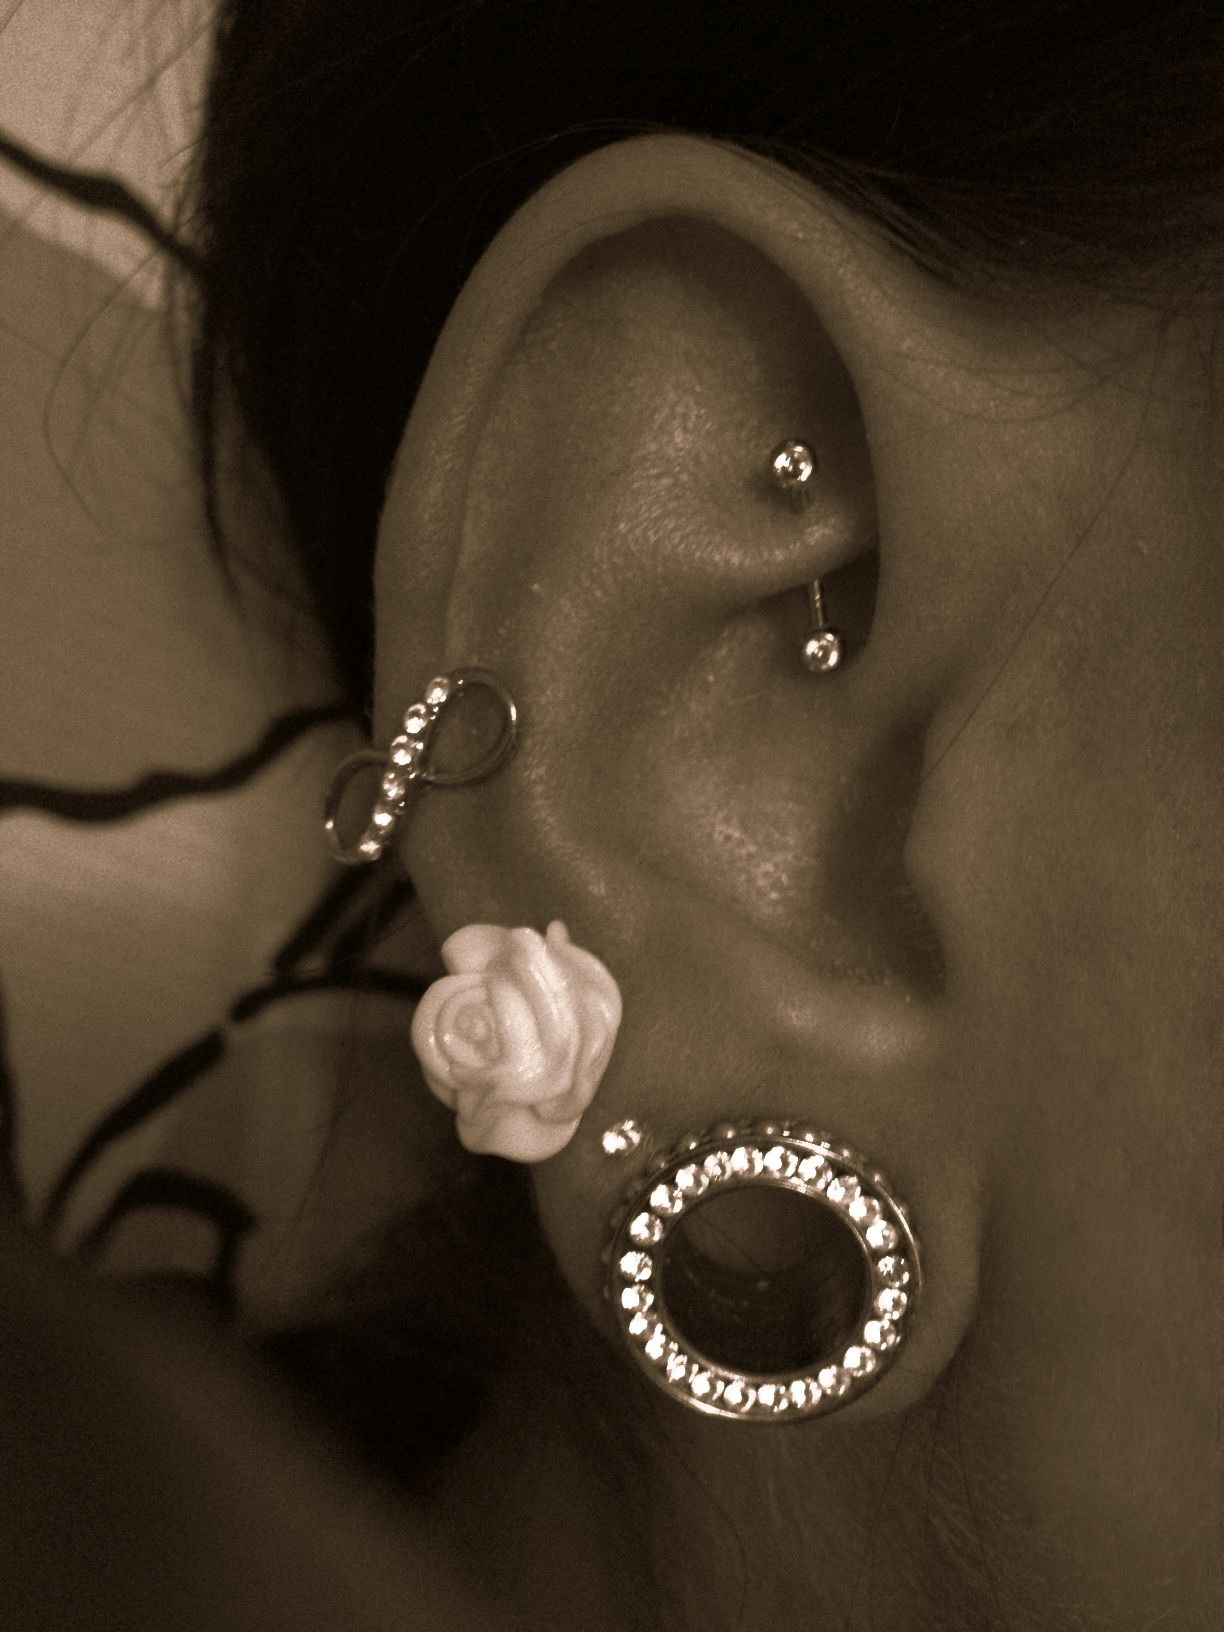 Prettiest Gauges I Have Seen May Just Be Converted To The Idea